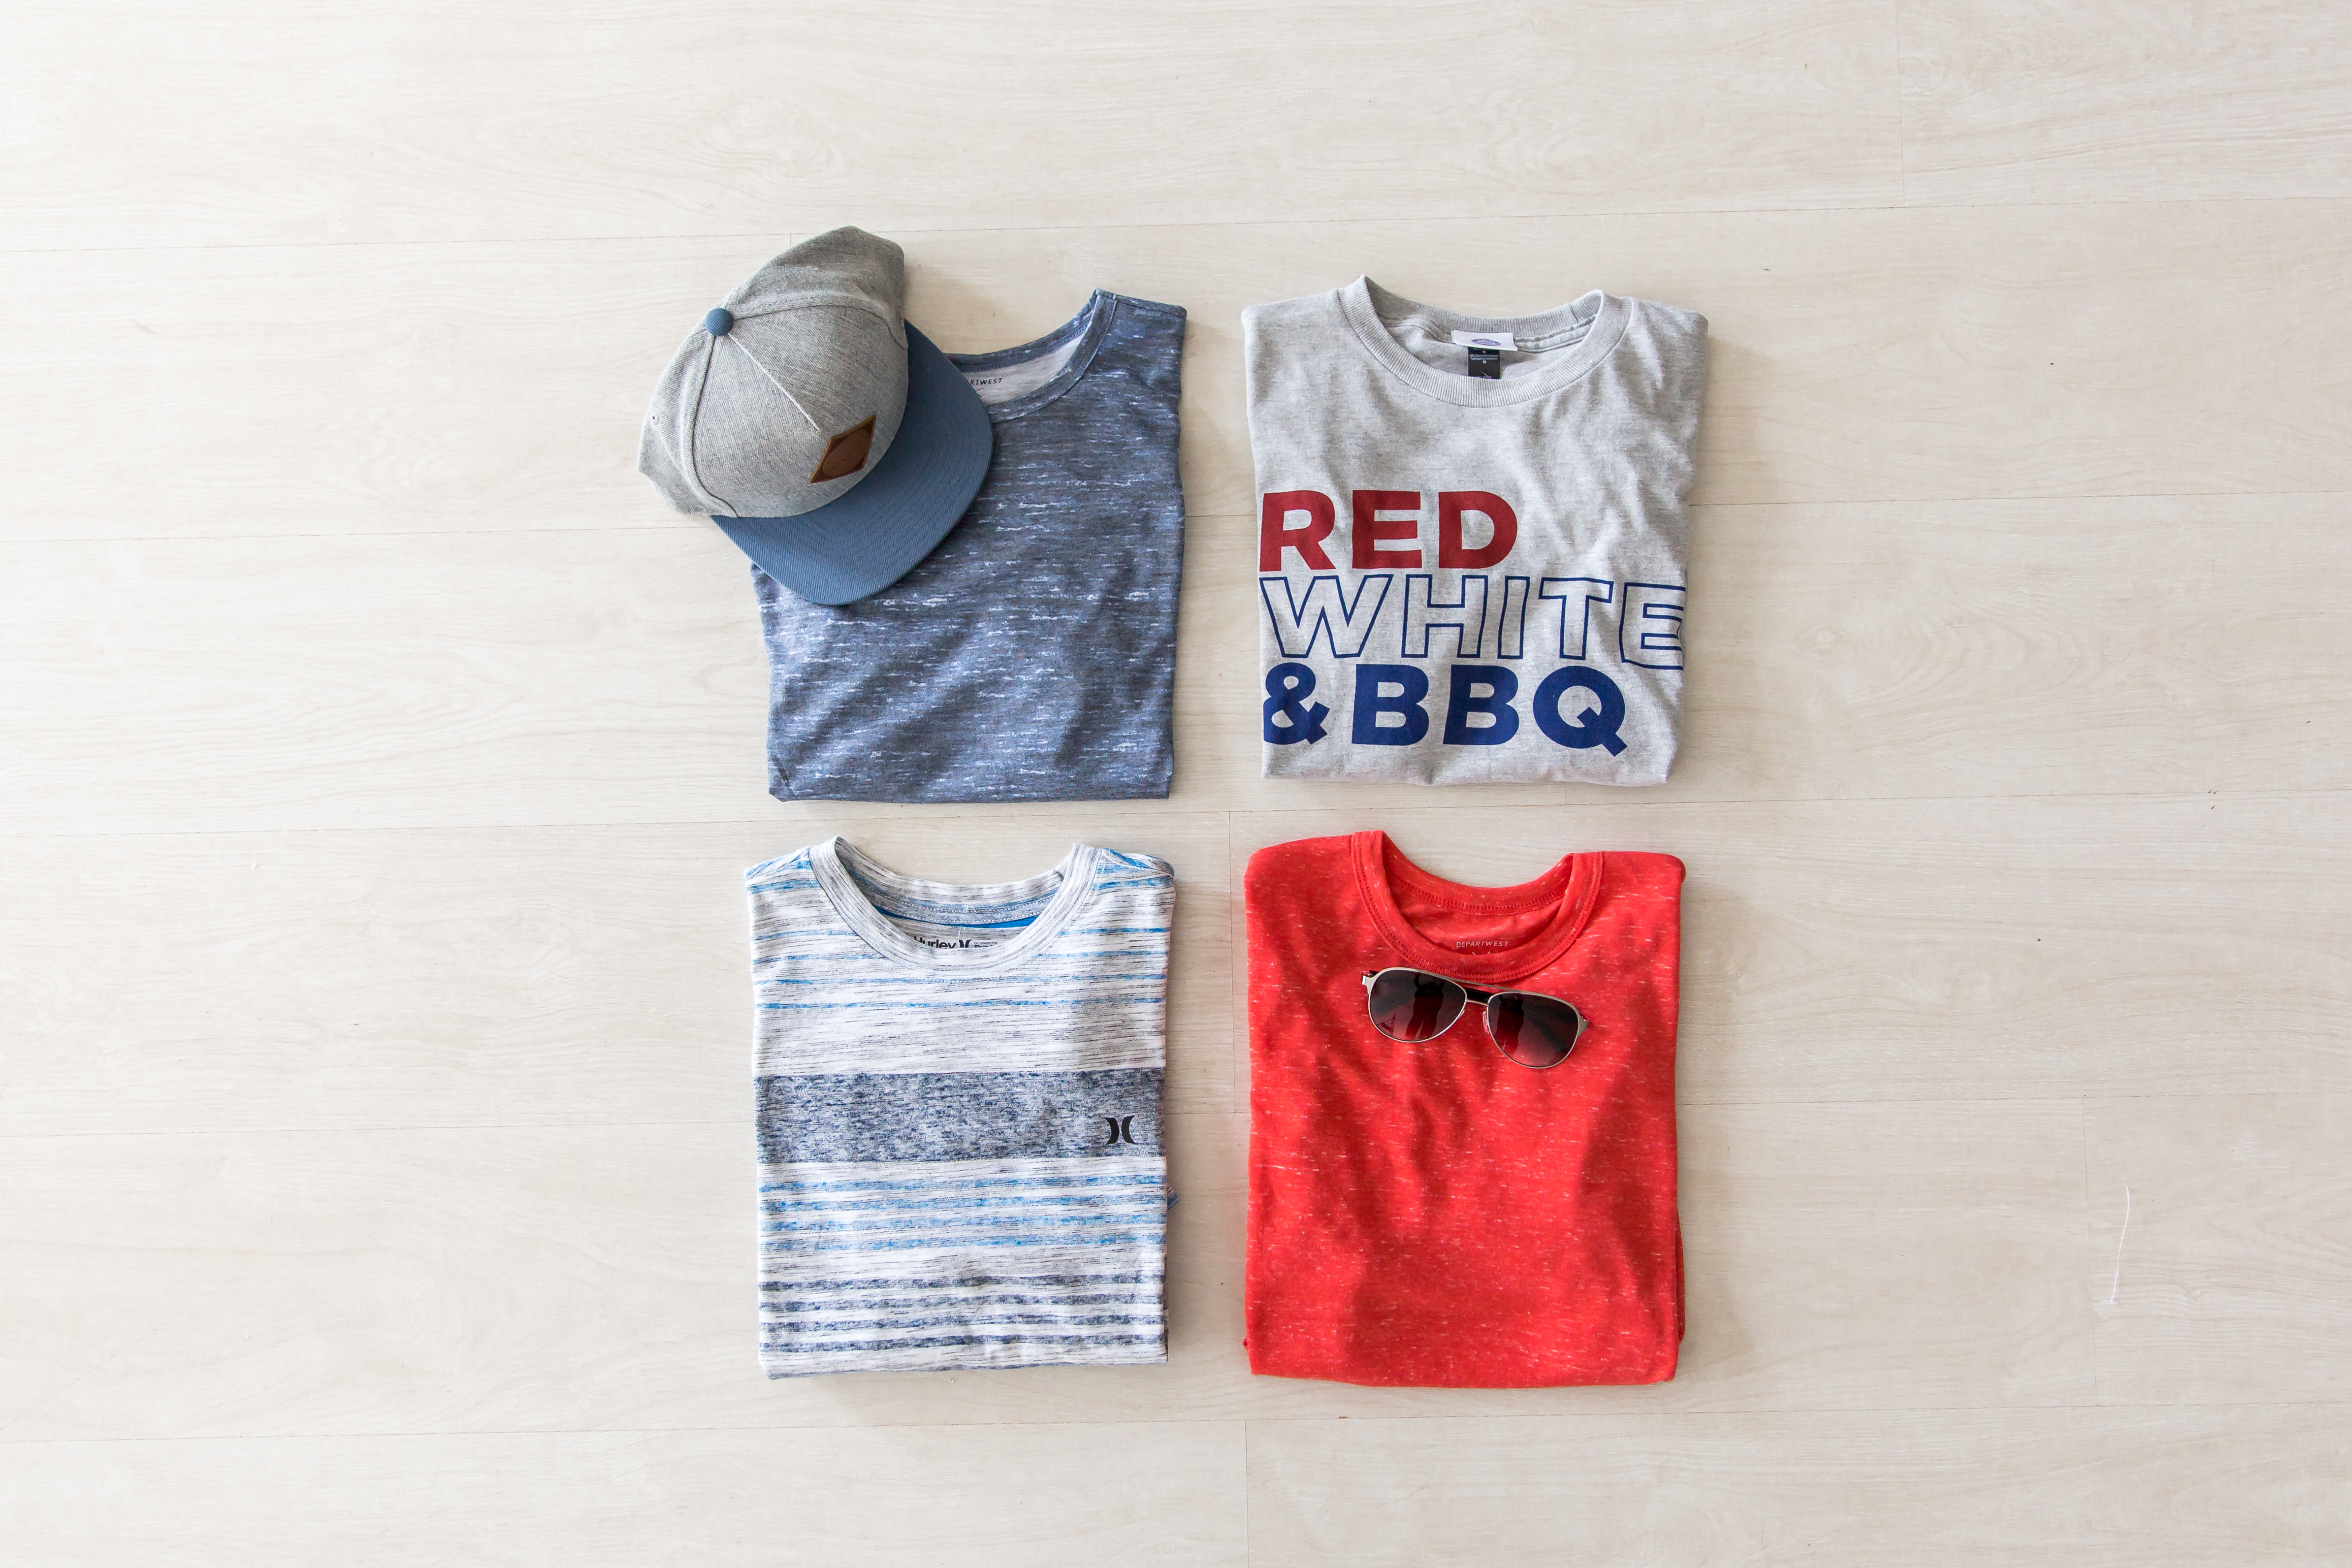 The perfect tees for your Memorial Day plans.